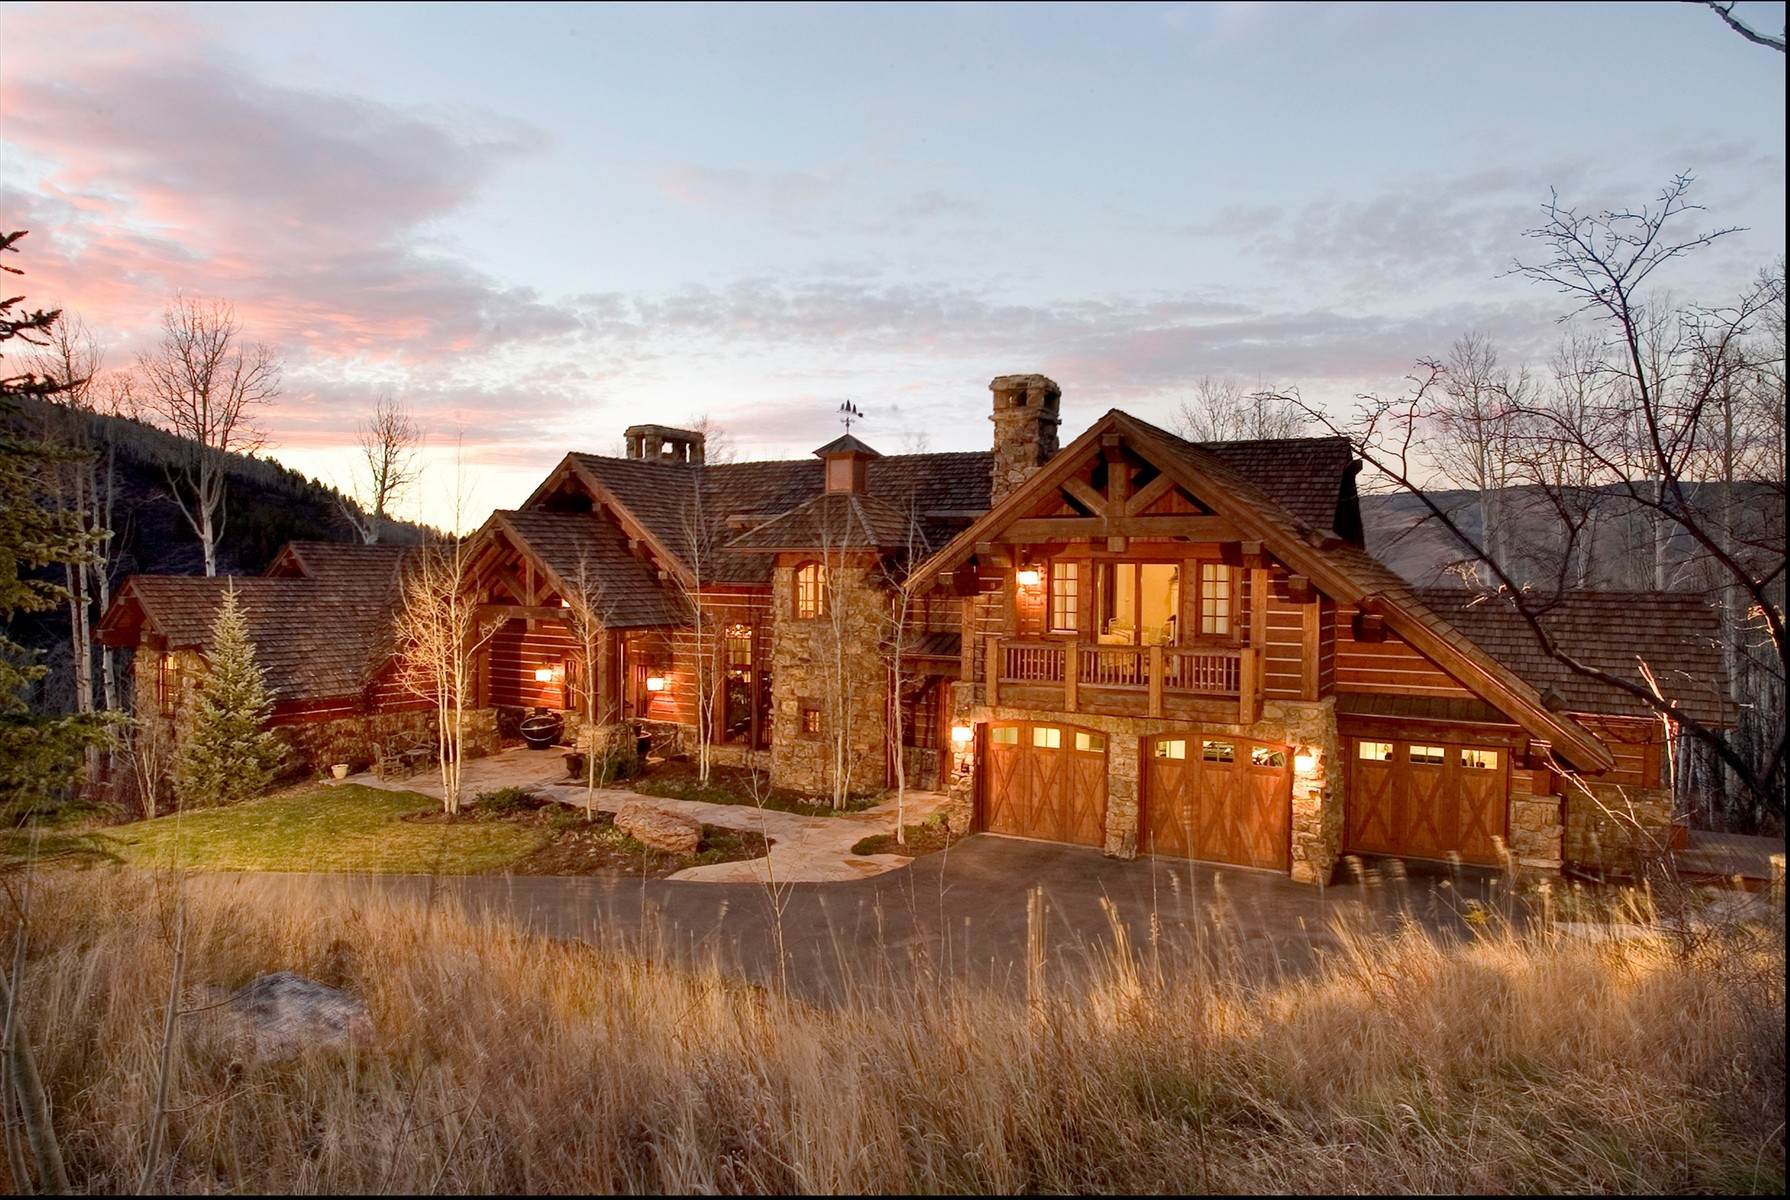 Single Family Home for Sale at 1860 Cresta Road Edwards, Colorado 81632 United States